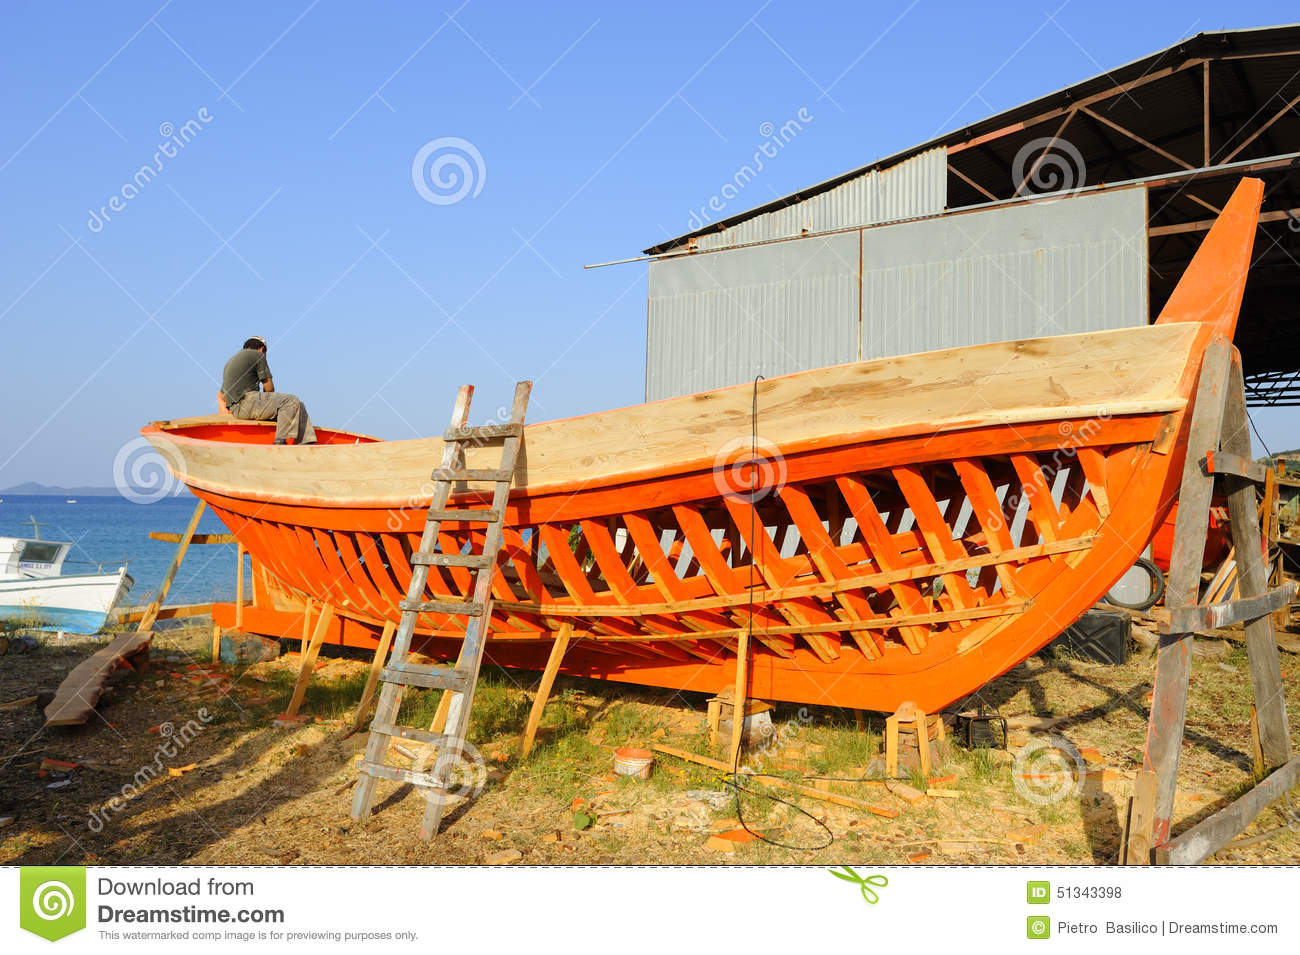 Europe, Greece, Halkidiki,wooden Boat Building Editorial Stock Photo - Image: 51343398